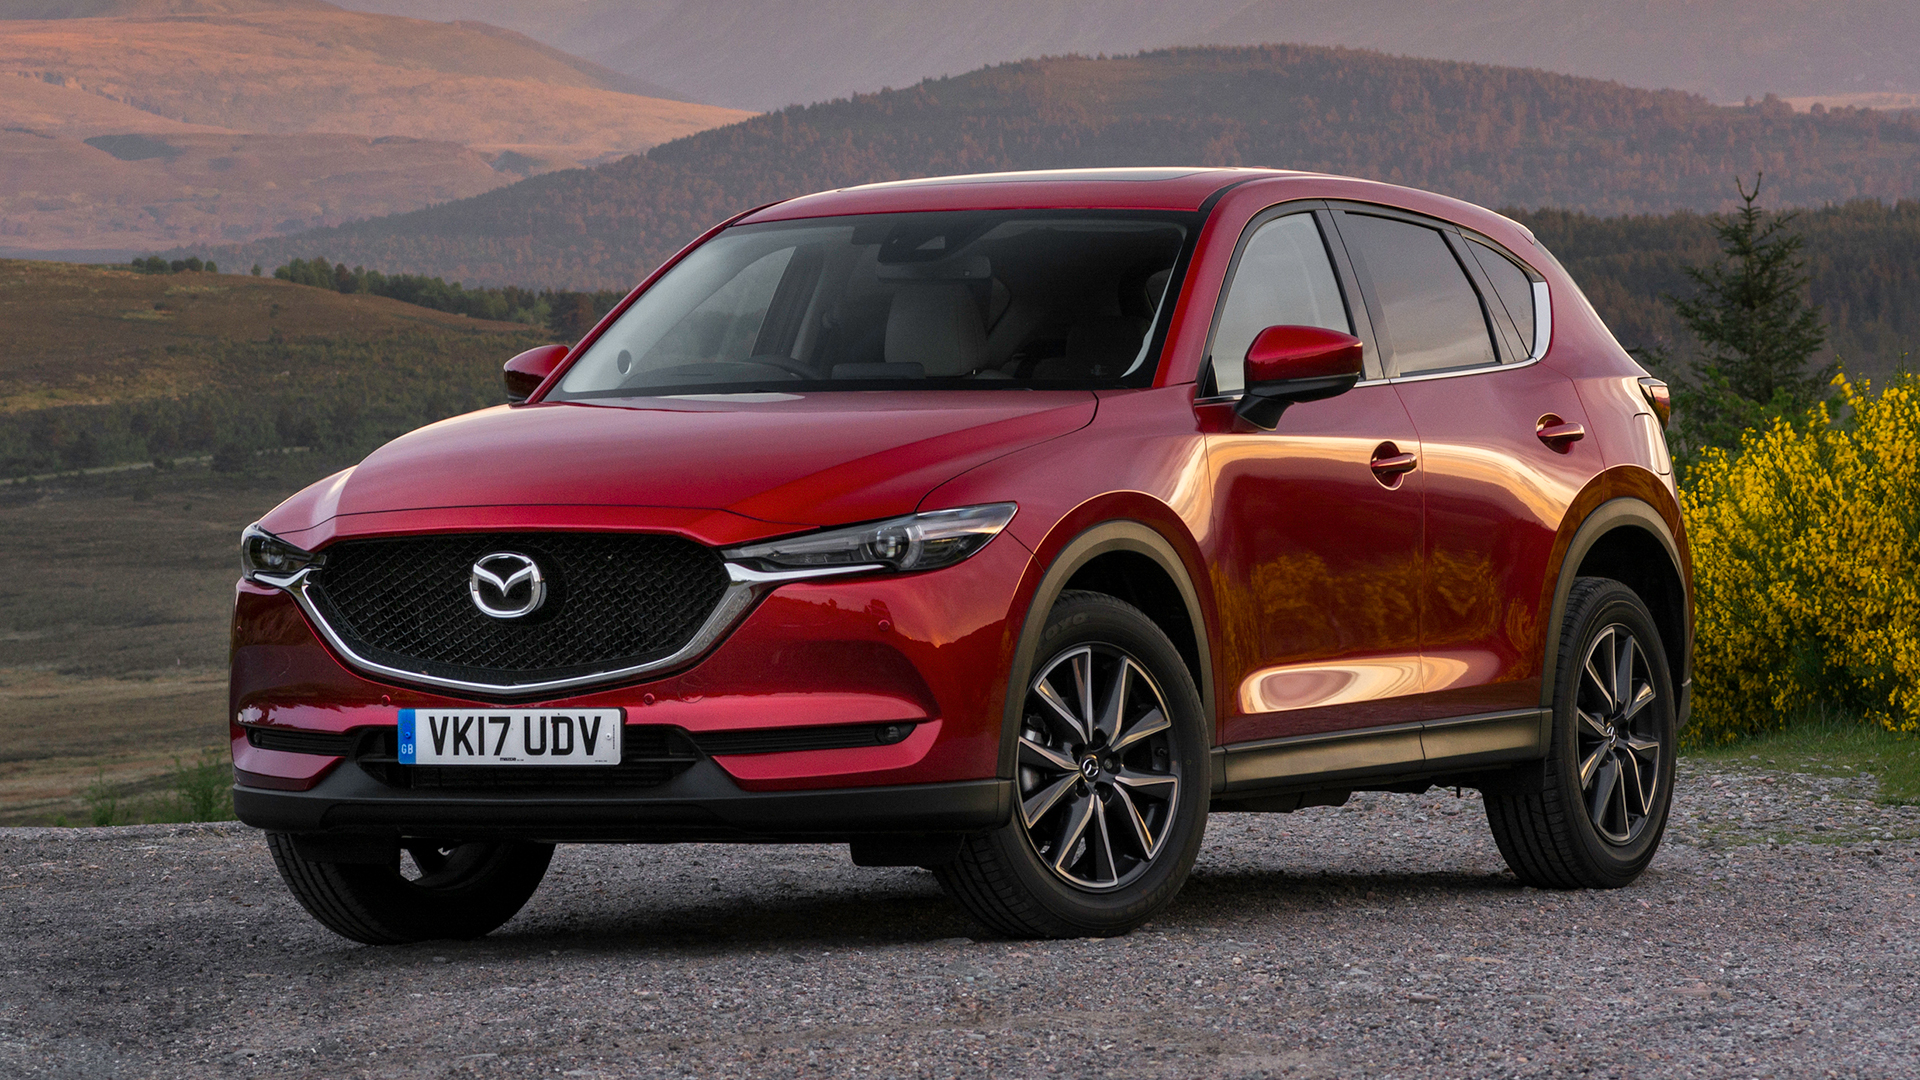 used mazda cx 5 cars for sale on auto trader uk. Black Bedroom Furniture Sets. Home Design Ideas